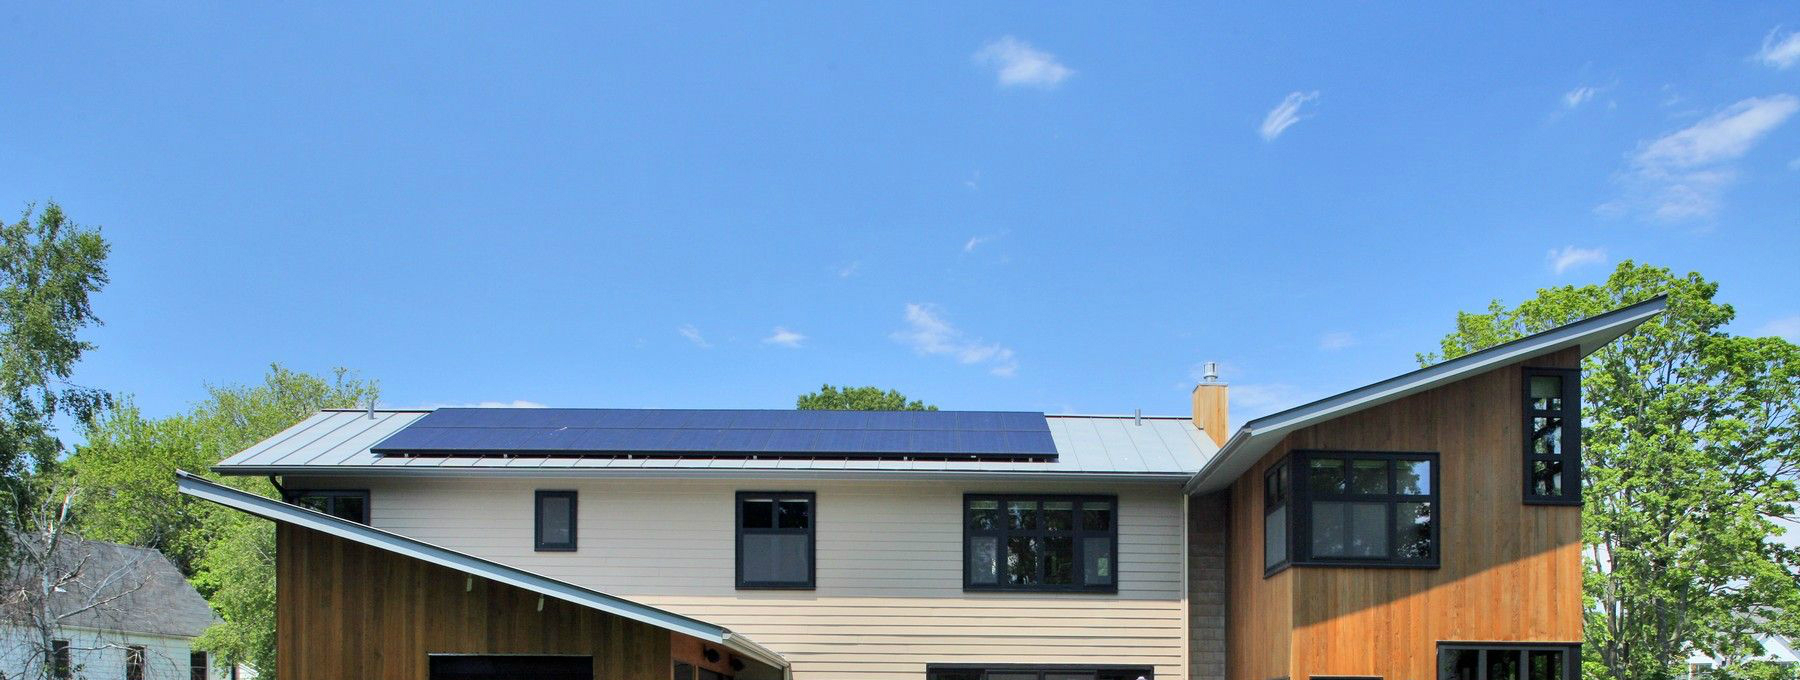 hOMEOWNER SERVICES - Repair, servicing & maintenance for:• Solar PV• Solar Thermal• Heat Pumps• MVHR Systems